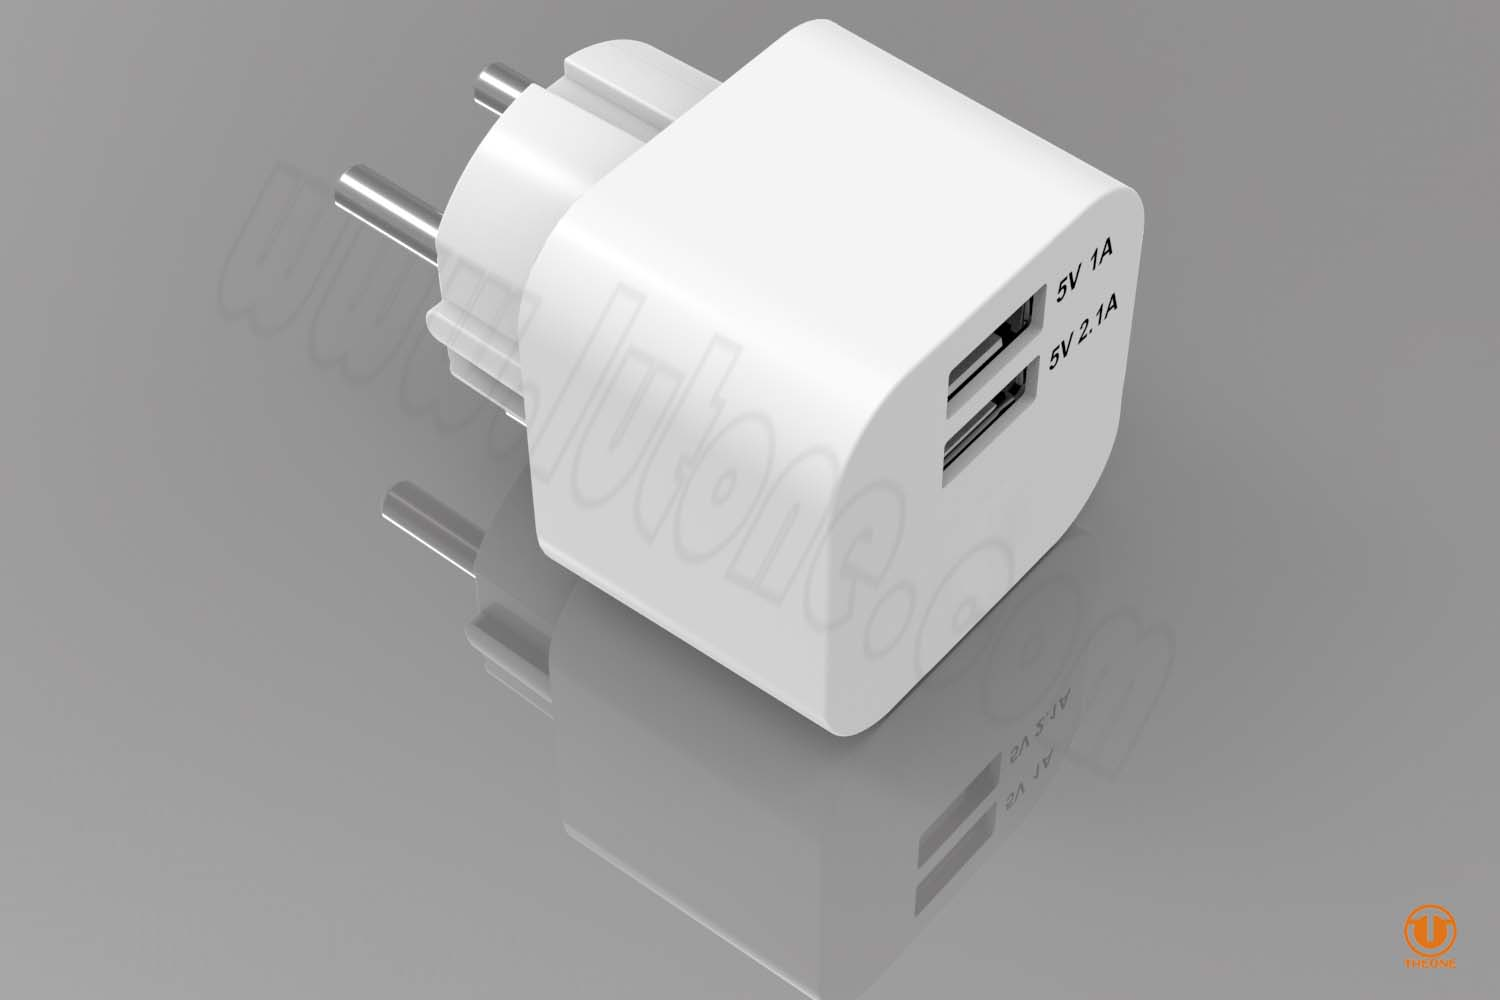 tc03b2-3 dual usb wall charger